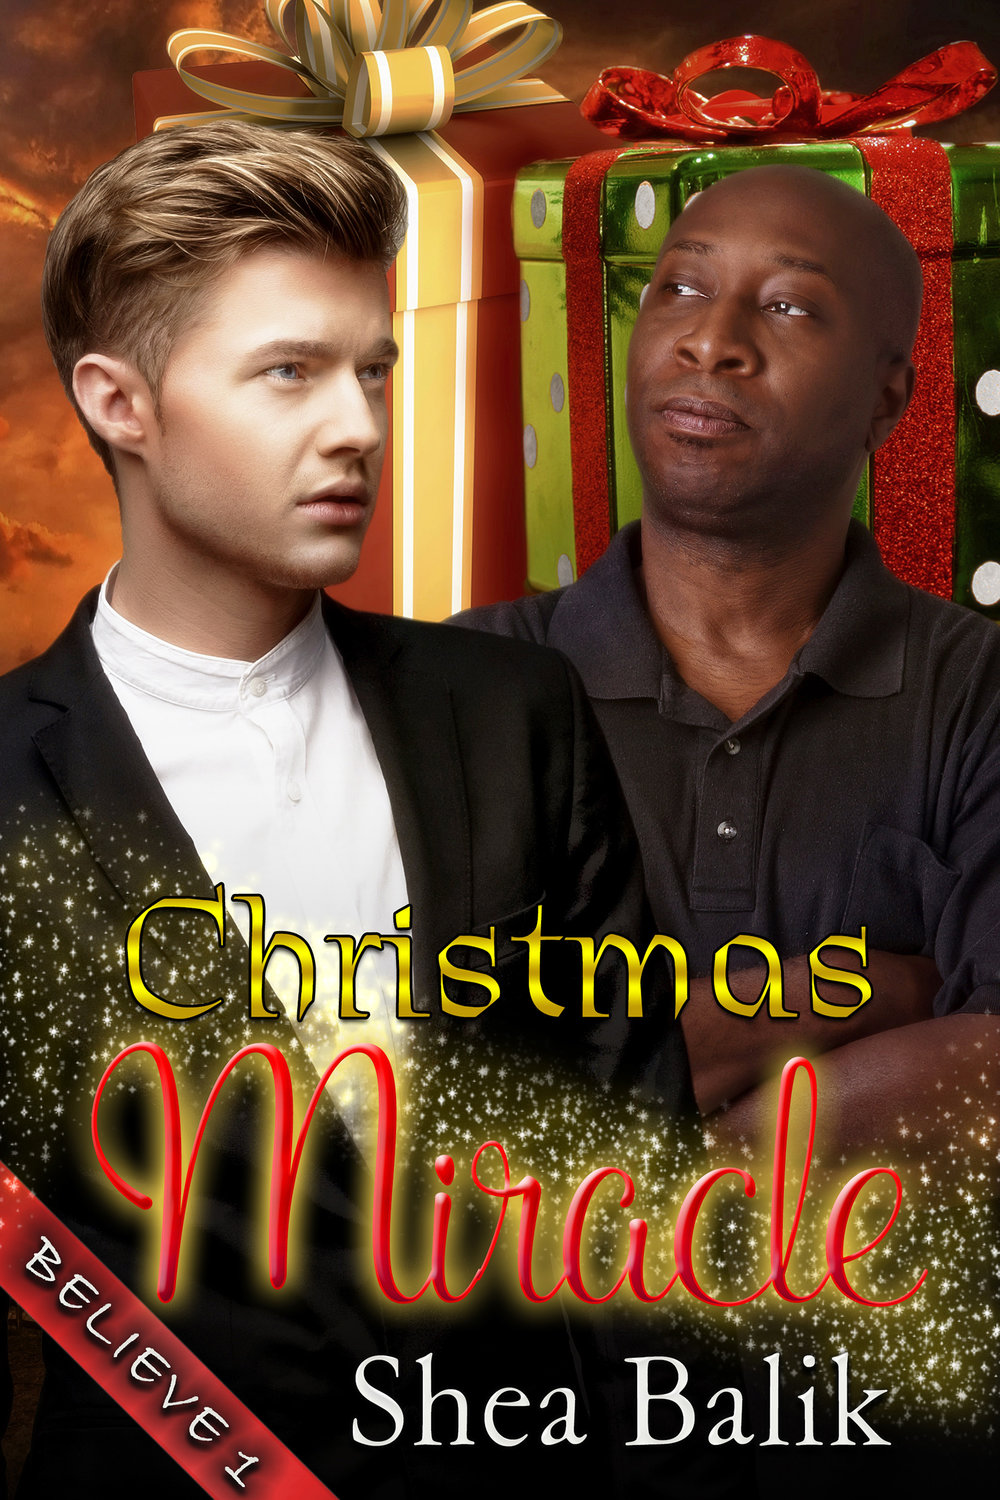 Christmas Miracle - Believe Book 1At a very early age, Ben learned that, in life, there was no such thing as something to believe in. What was the point? Each time he did, someone would come along and prove to him how wrong he was. The fact that his sister died by a drunk driver, who'd walked away without a scratch, and forcing Tobias to move to Texas — one of the most homophobic states in the country — to take care of his now motherless nieces, drove home just how cruel life could be. How was he supposed to help two of the sweetest kids he'd ever known deal with the hell their life would be without the one person they'd depended on, when he was fairly certain, his moving to Texas would only show them how horrible people could be to one another?Darius had seen things that would make most people cringe in revulsion and dread. His parents had traveled, with Darius in tow, all around the world to help those in need. So tragedy wasn't something new to him. As terrible as some of it had been, Darius had also seen the kindness and sacrifice people made to help others. He was a true believer in the goodness of humanity.Determined to help Ben discover that though he may have had hit a few bumps in the road growing up, he'd also met people who had been there for him, helping him when they didn't have to get involved. For life might not always be perfect and at times even cruel, but it was also wonderful and kind if one knew where to look.Ben had to admit that Darius was causing him to look at the world differently. That there might be a chance he'd been only looking for the negative. But, for him, there was one more test that the world would have to pass for him to truly change and it would take a Christmas Miracle to do it.Get your copy for Only $1.99 Or FREE in Kindle Unlimited!!